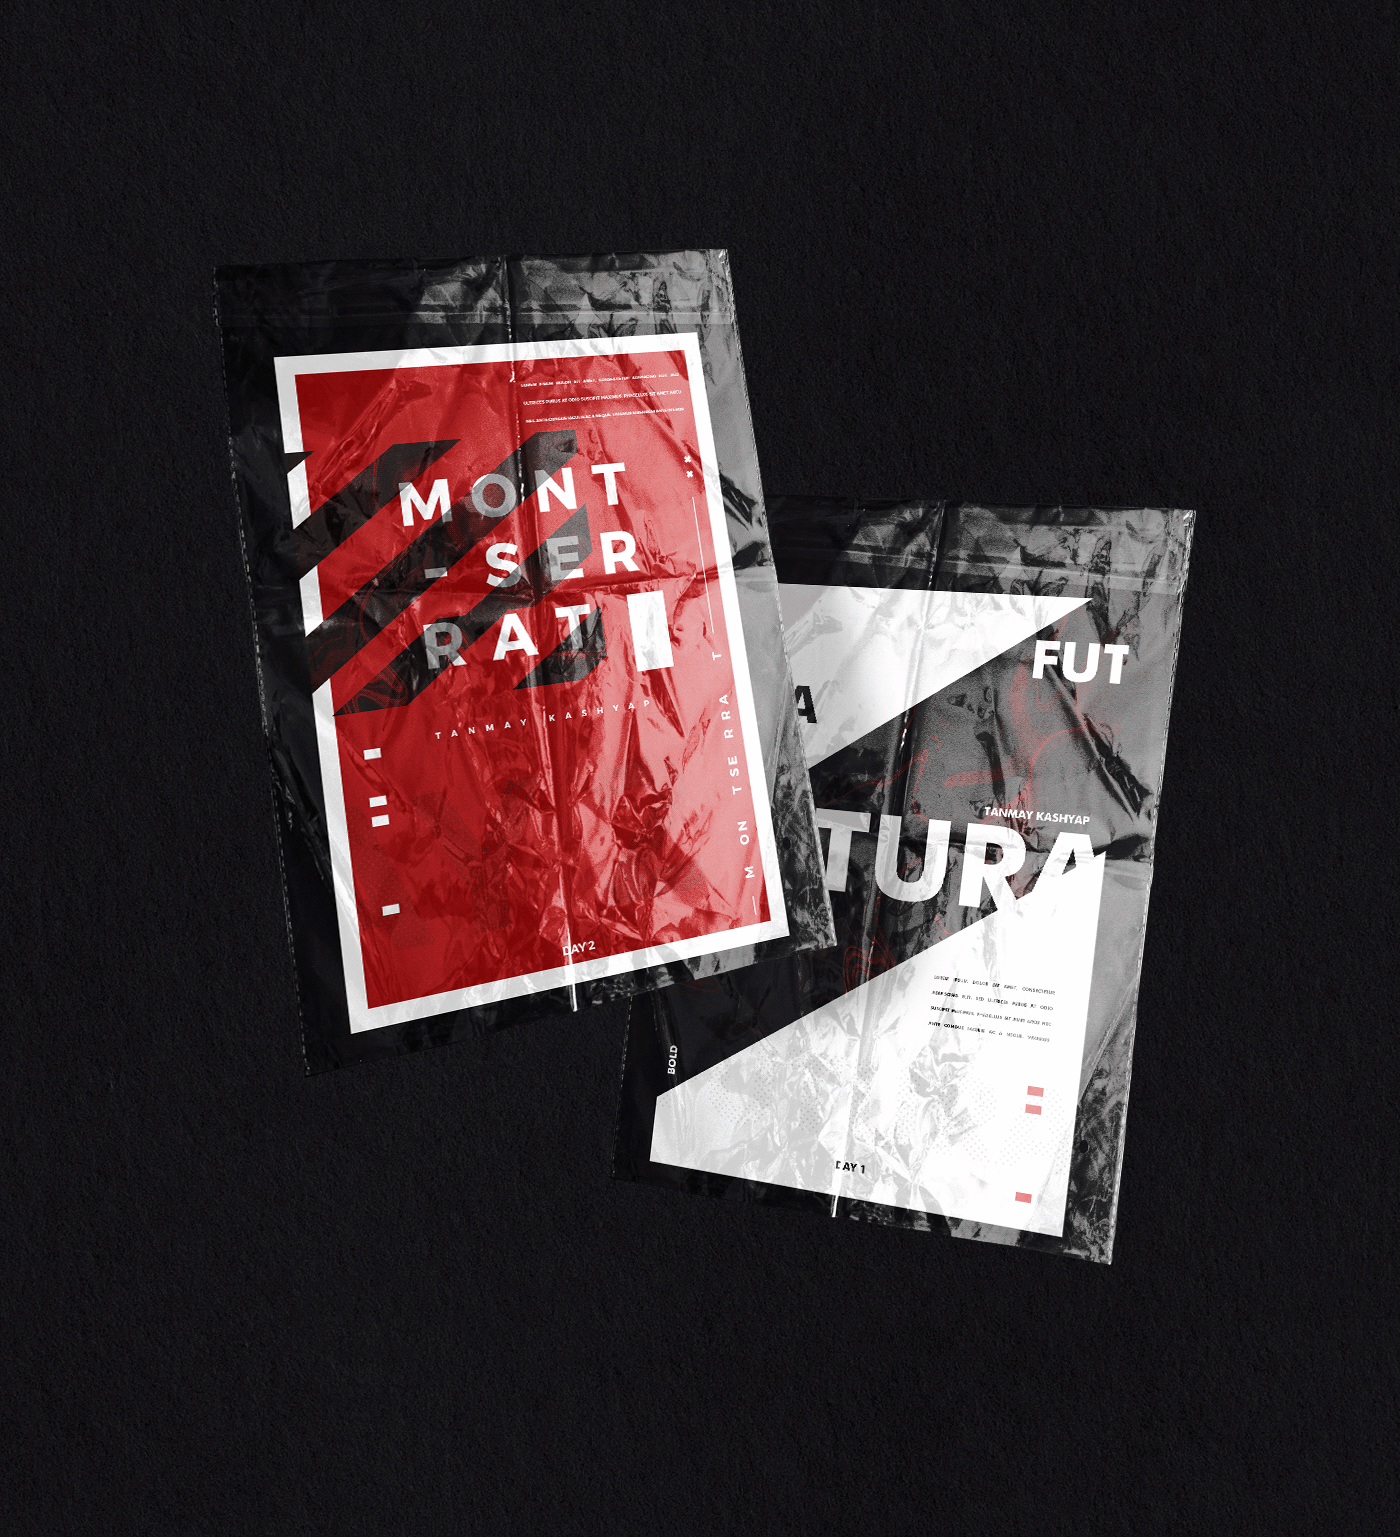 graphic poster acid art graphic design  Mockup poster collection type Urban